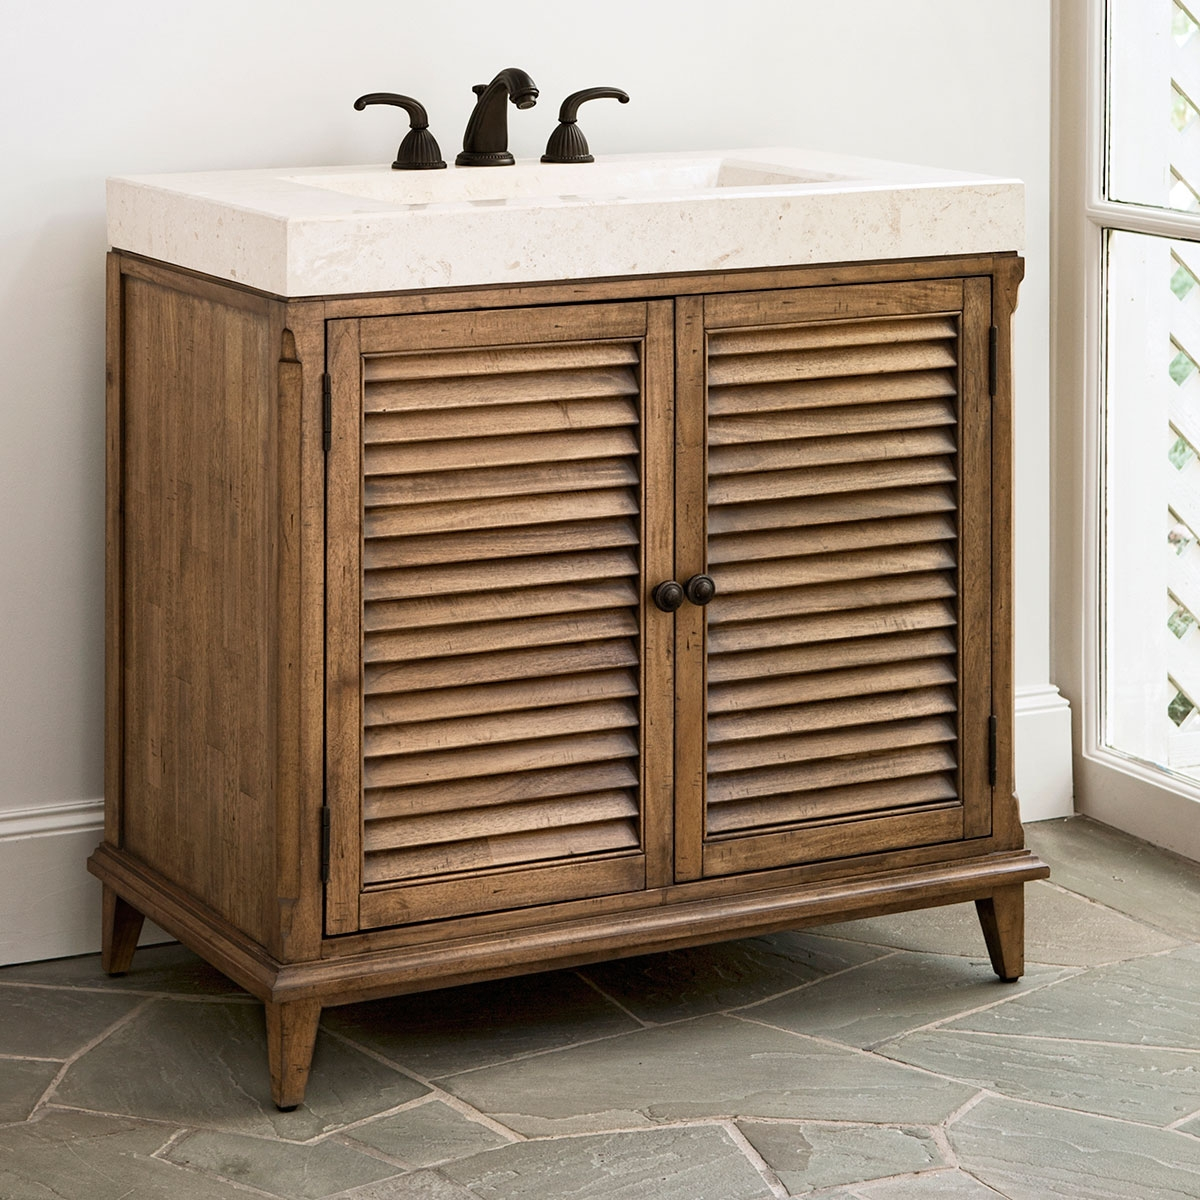 Louvered Door Bathroom Vanity